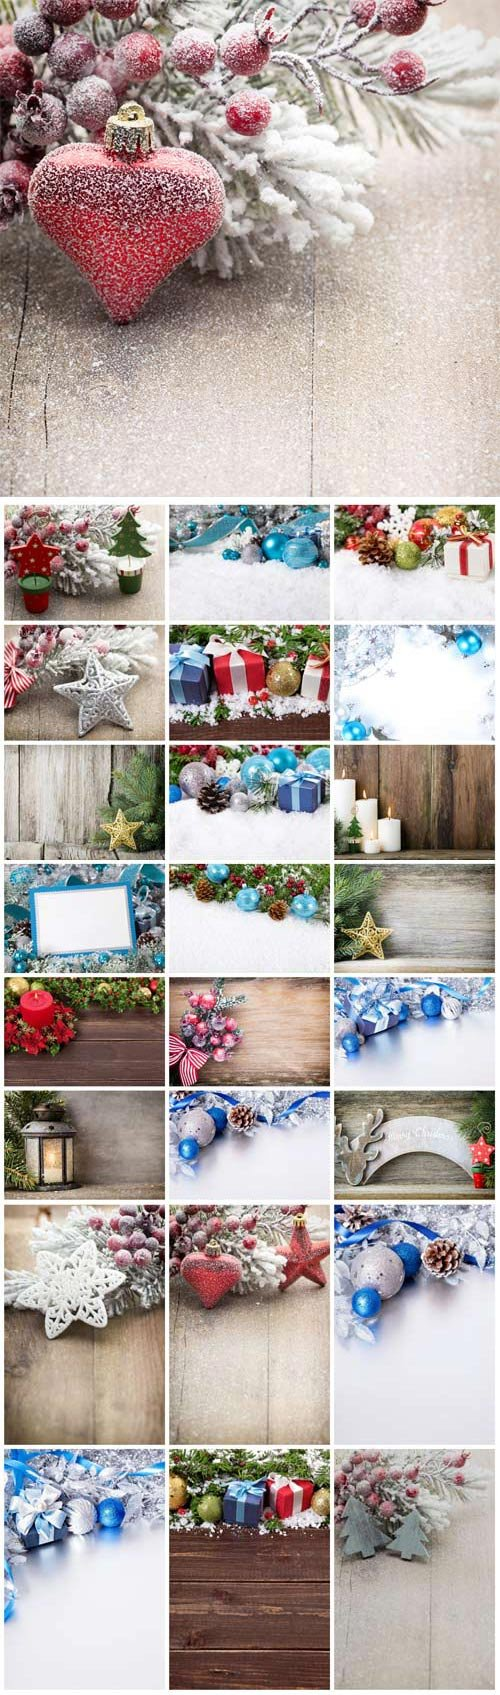 New Year and Christmas stock photos №22